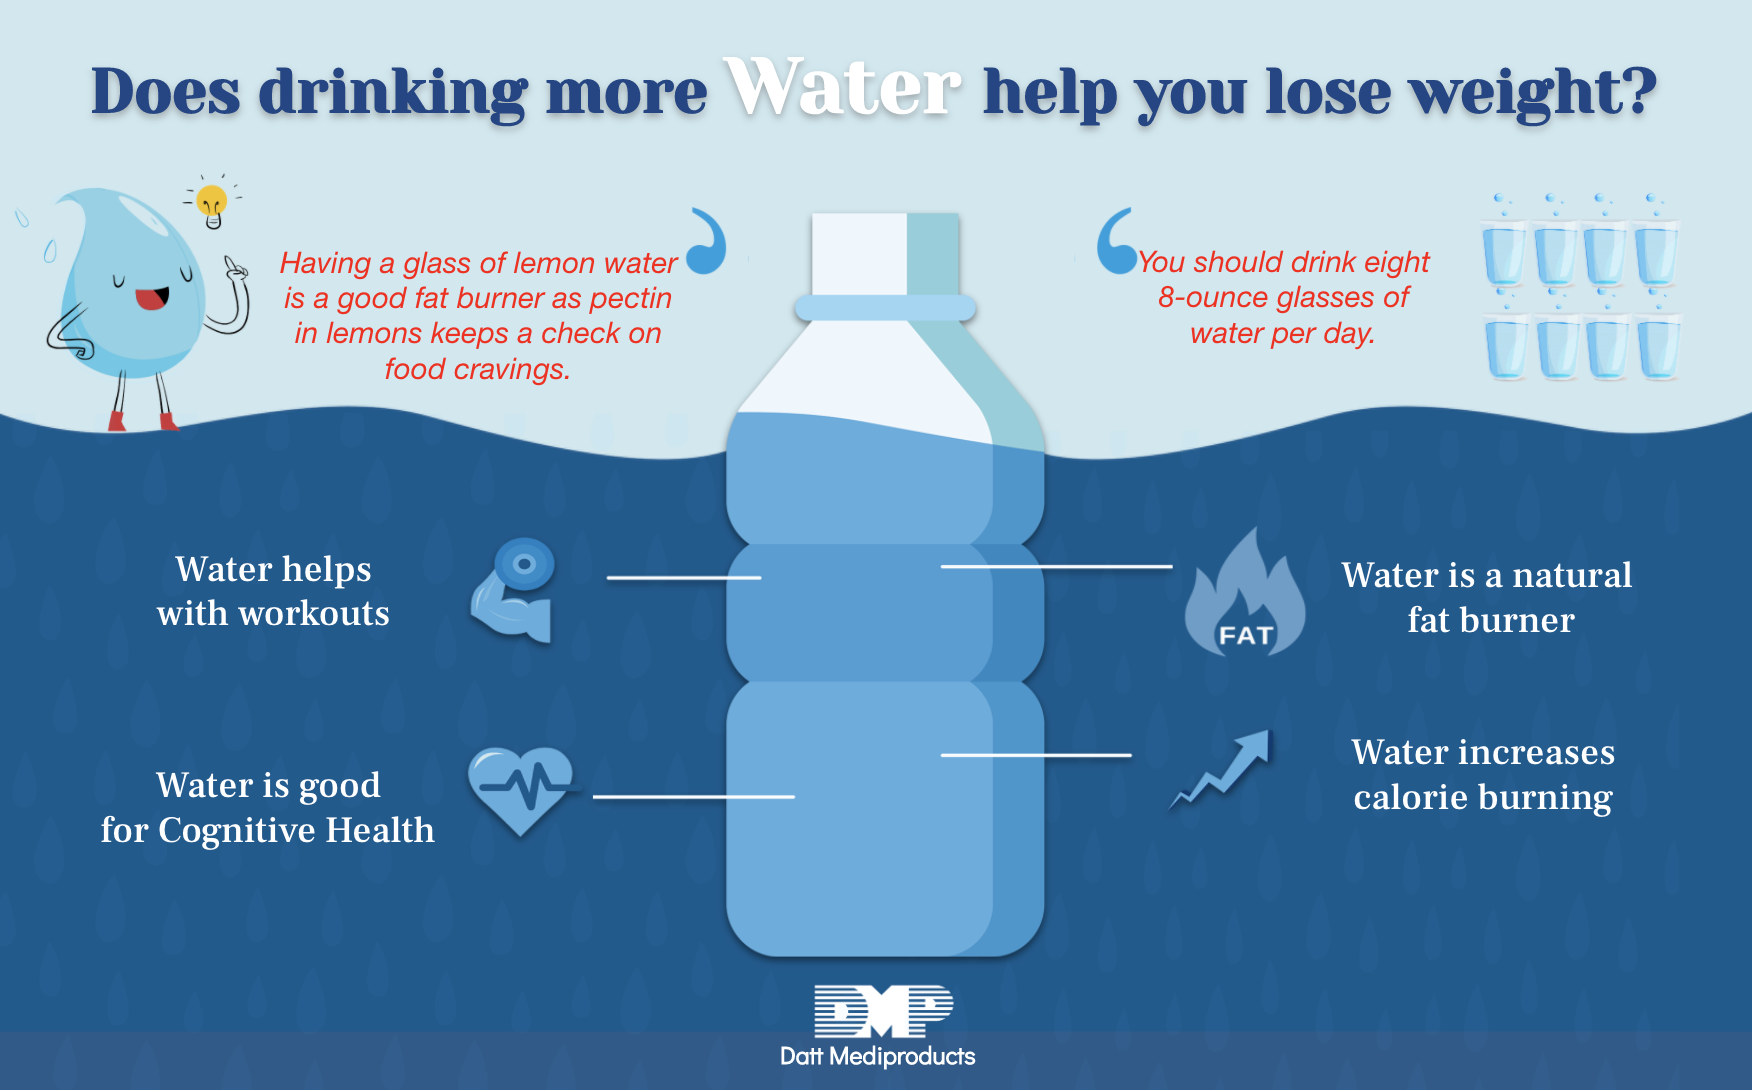 Does drinking more water help you lose weight? – Blog by Datt